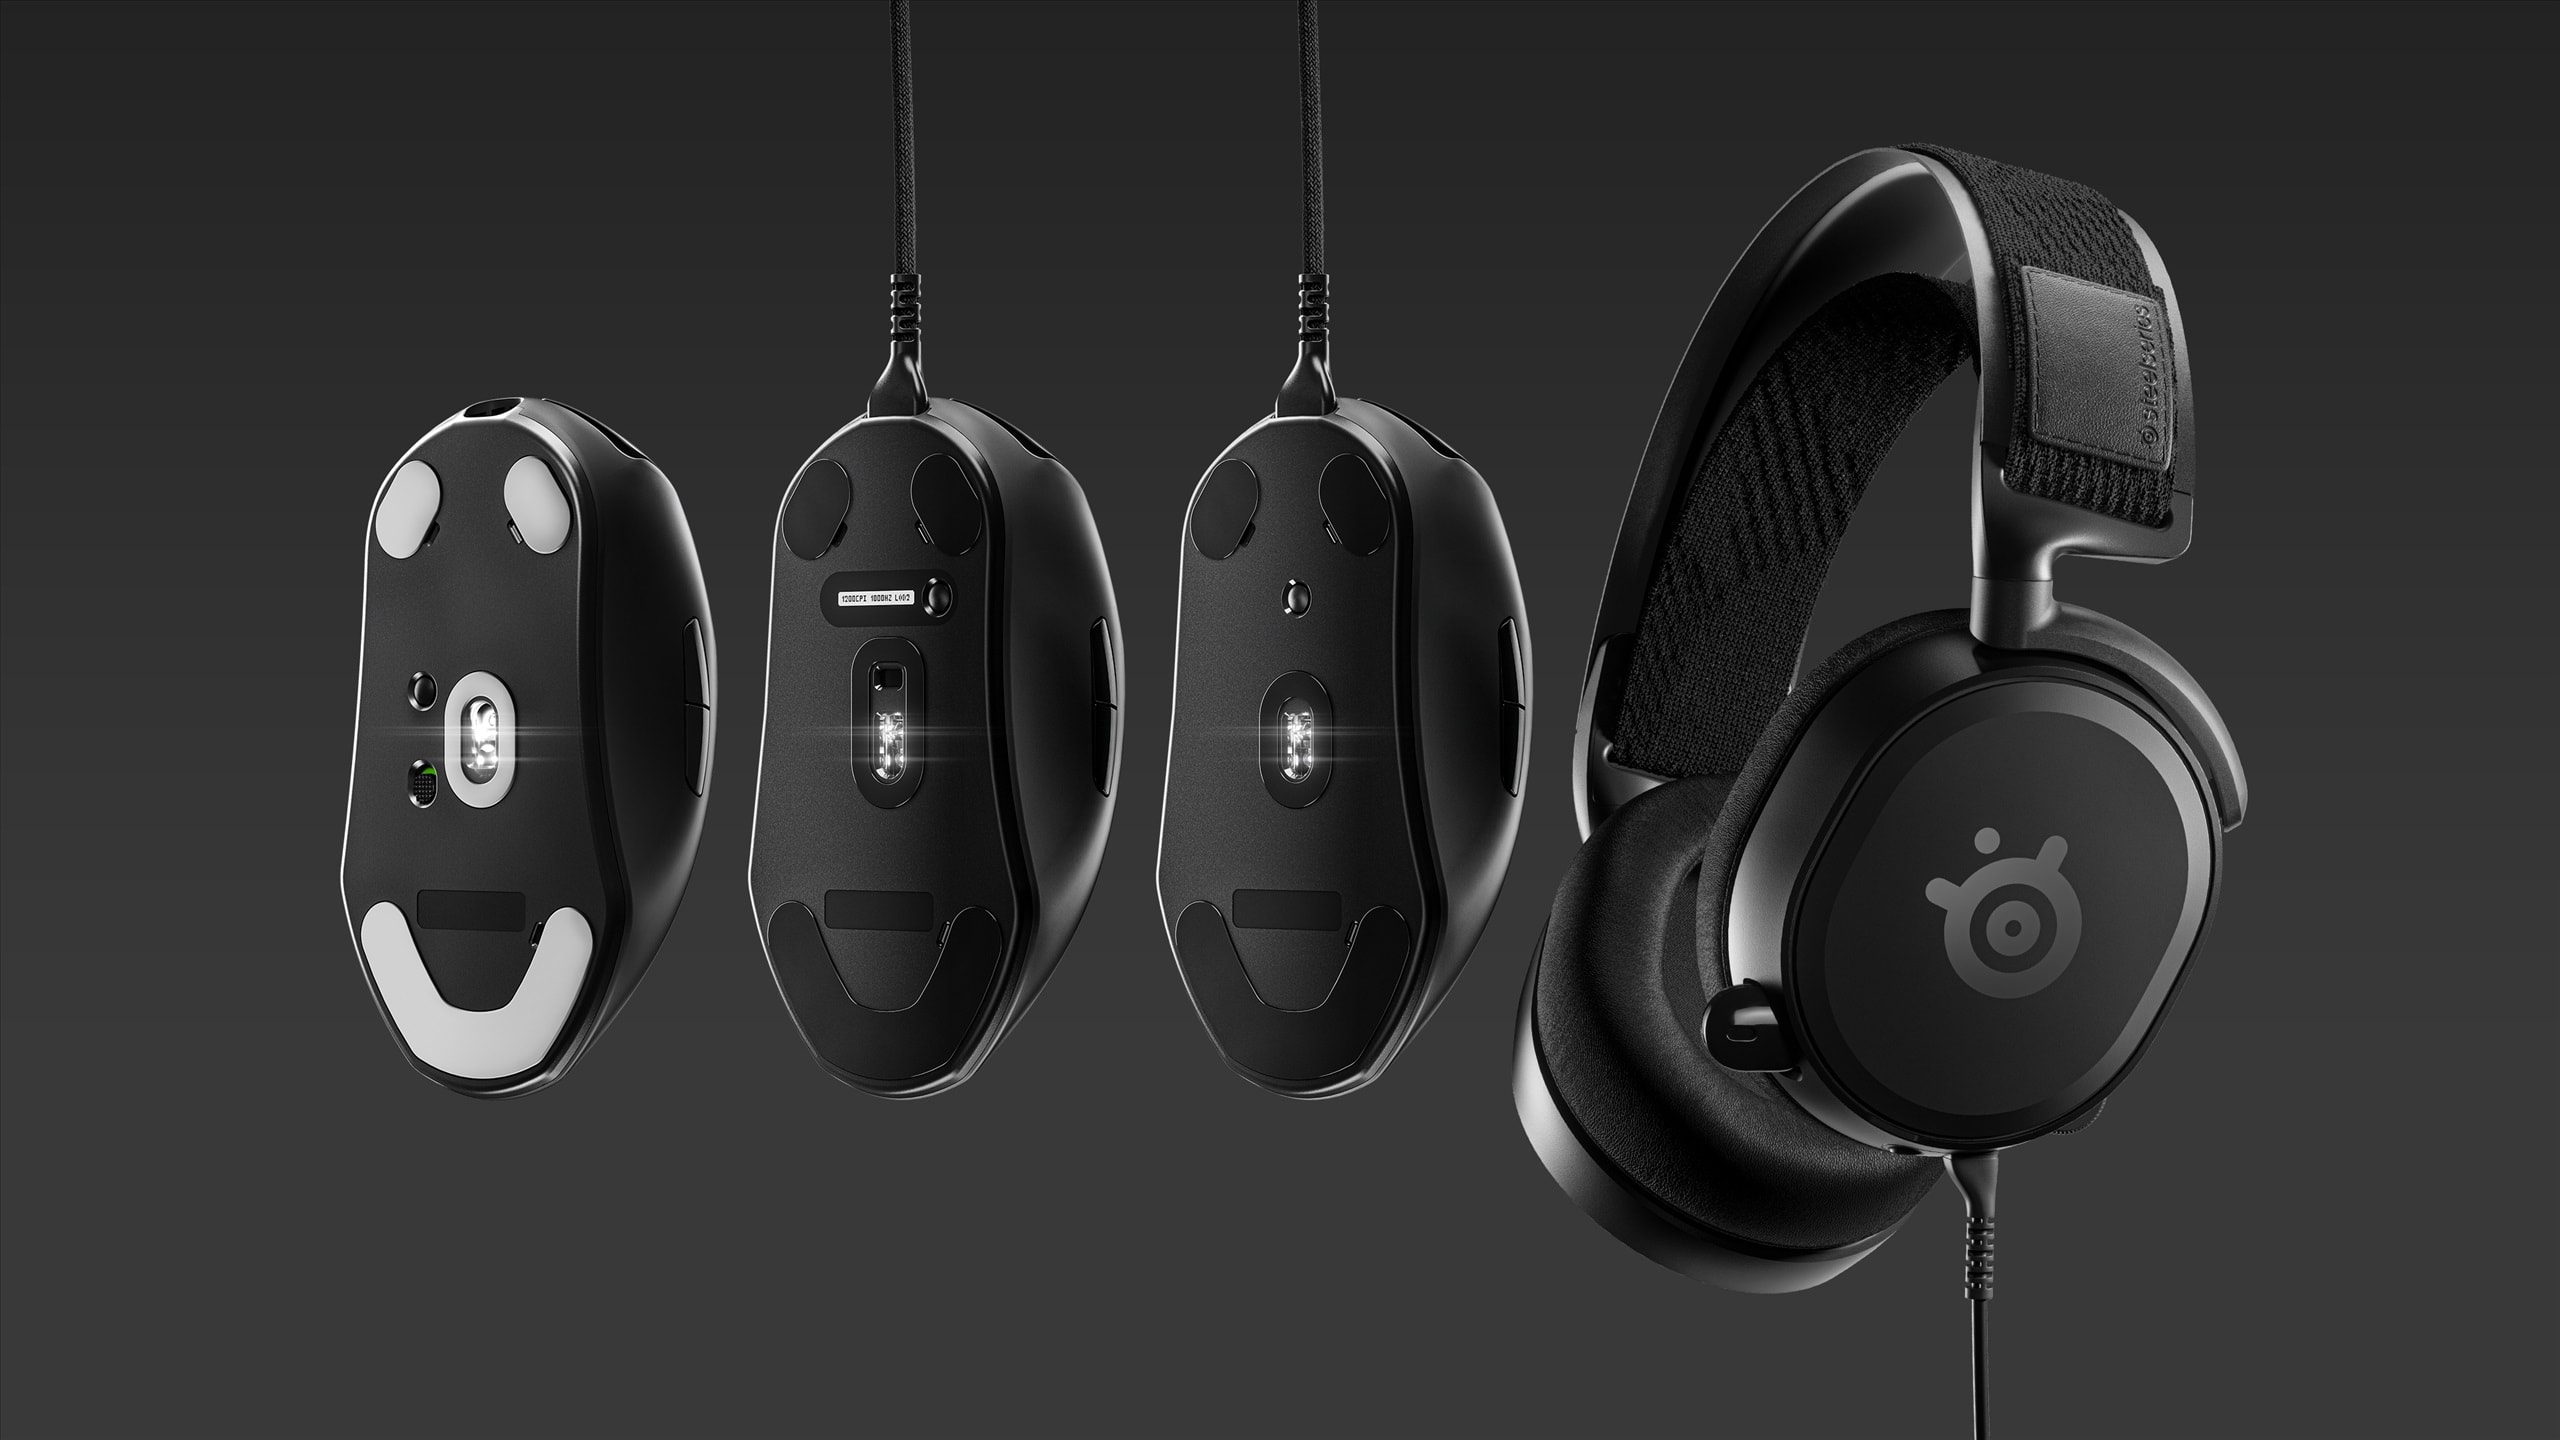 SteelSeries introduces new gaming peripherals designed for the esports and pros